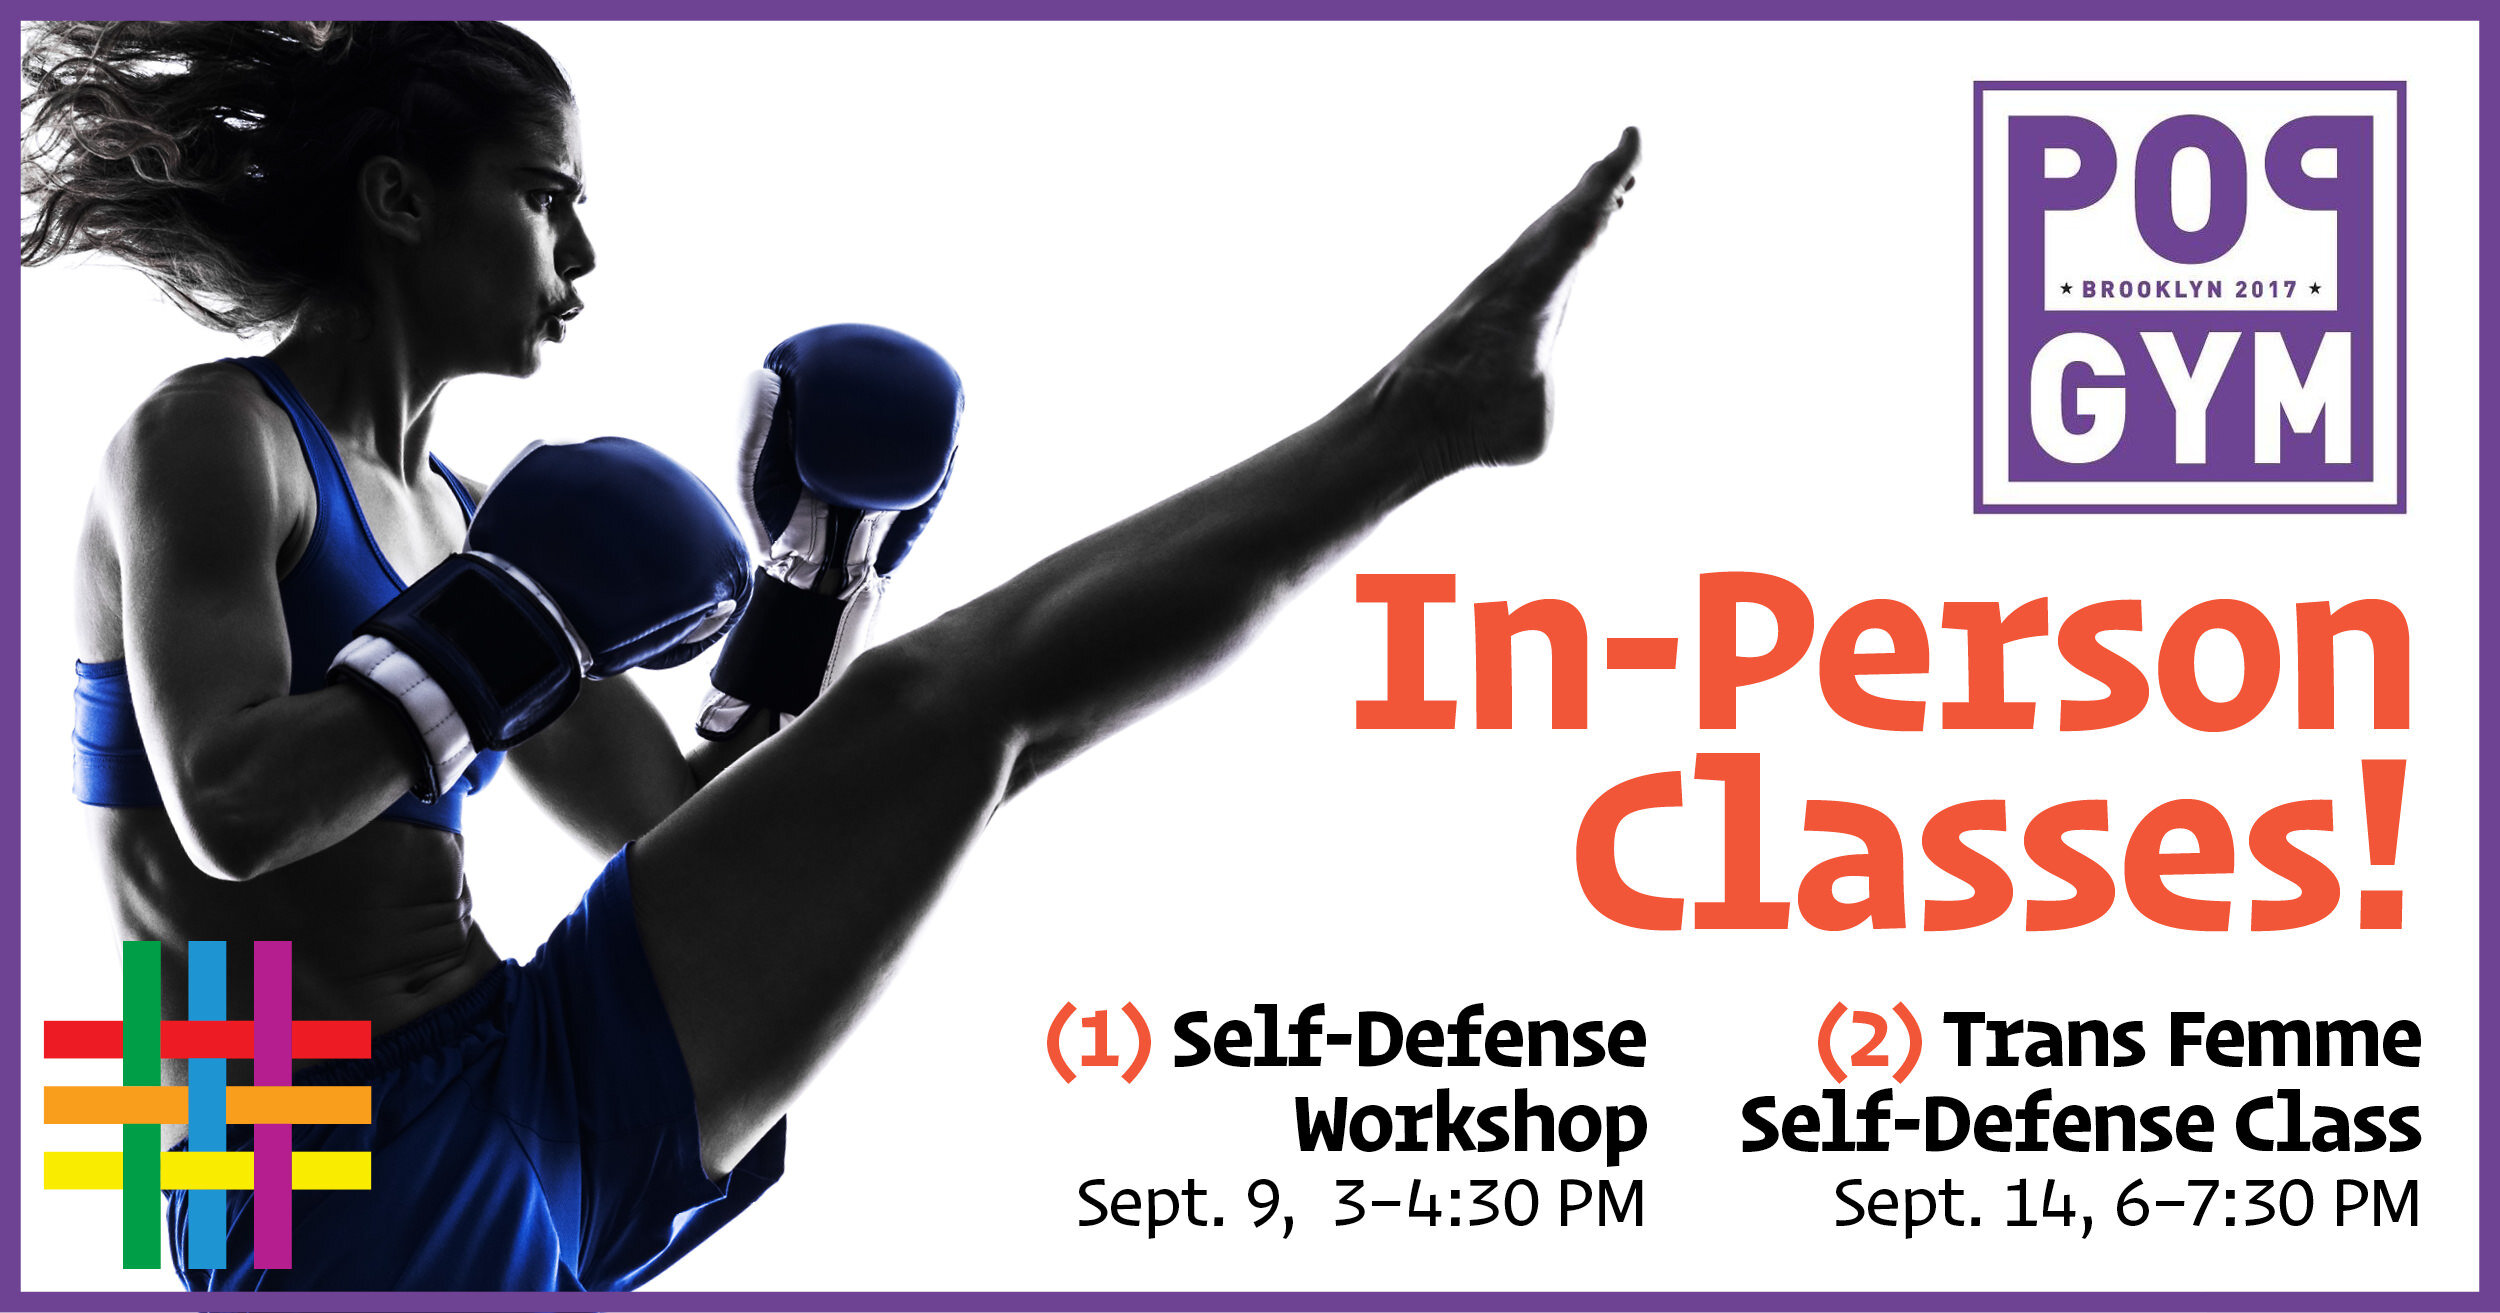 In-Person Self-Defense Classes by Pop Gym